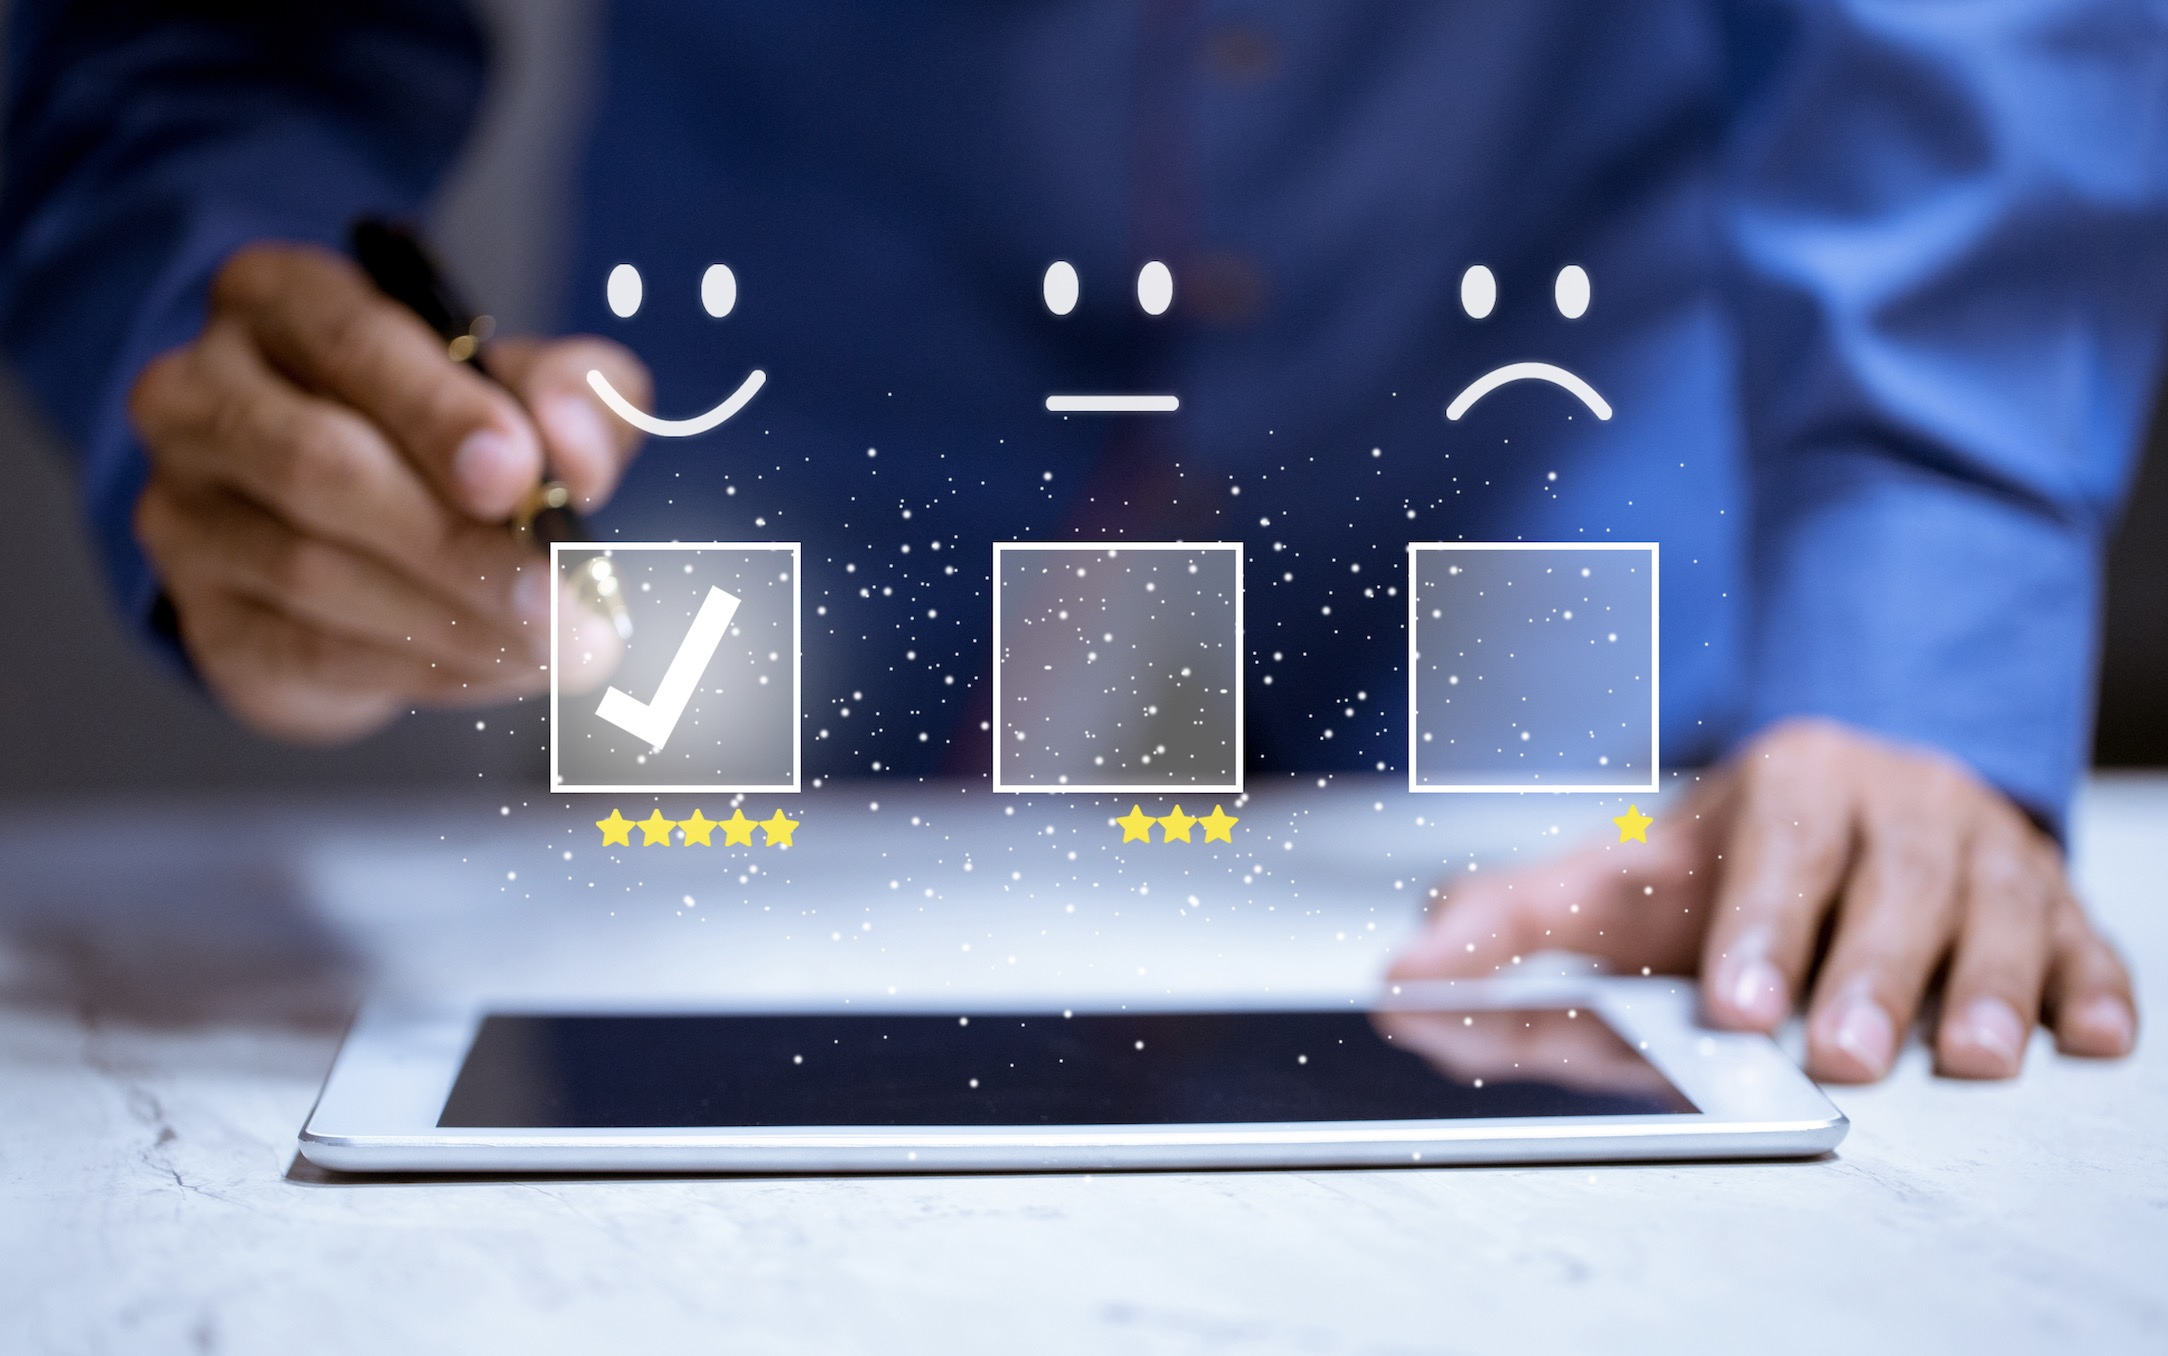 customer product or service feedback on tablet